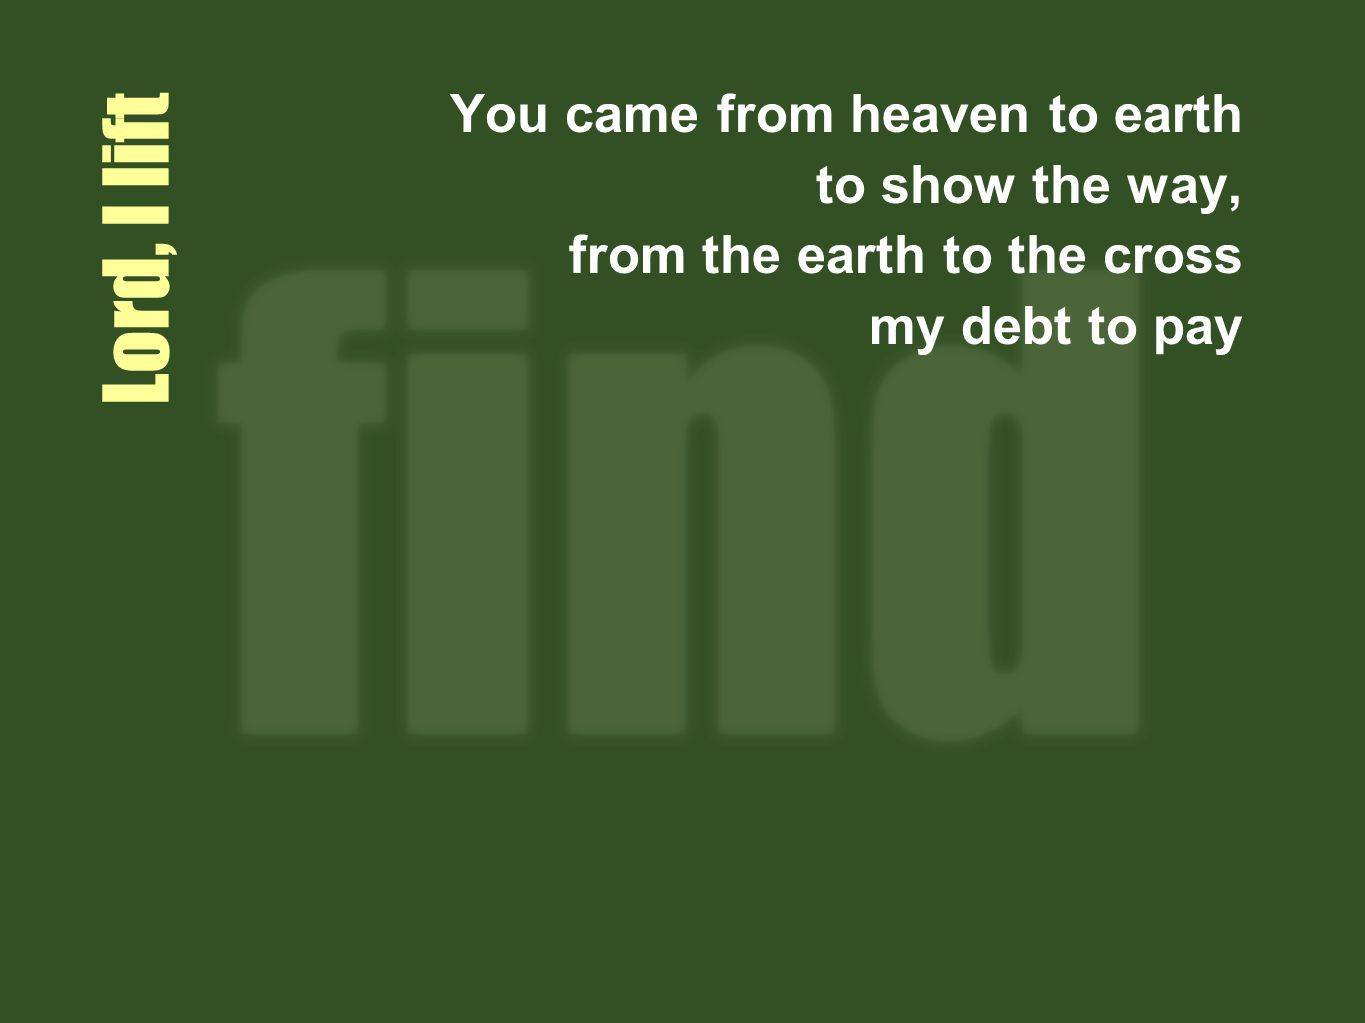 Lord, I lift You came from heaven to earth to show the way, from the earth to the cross my debt to pay